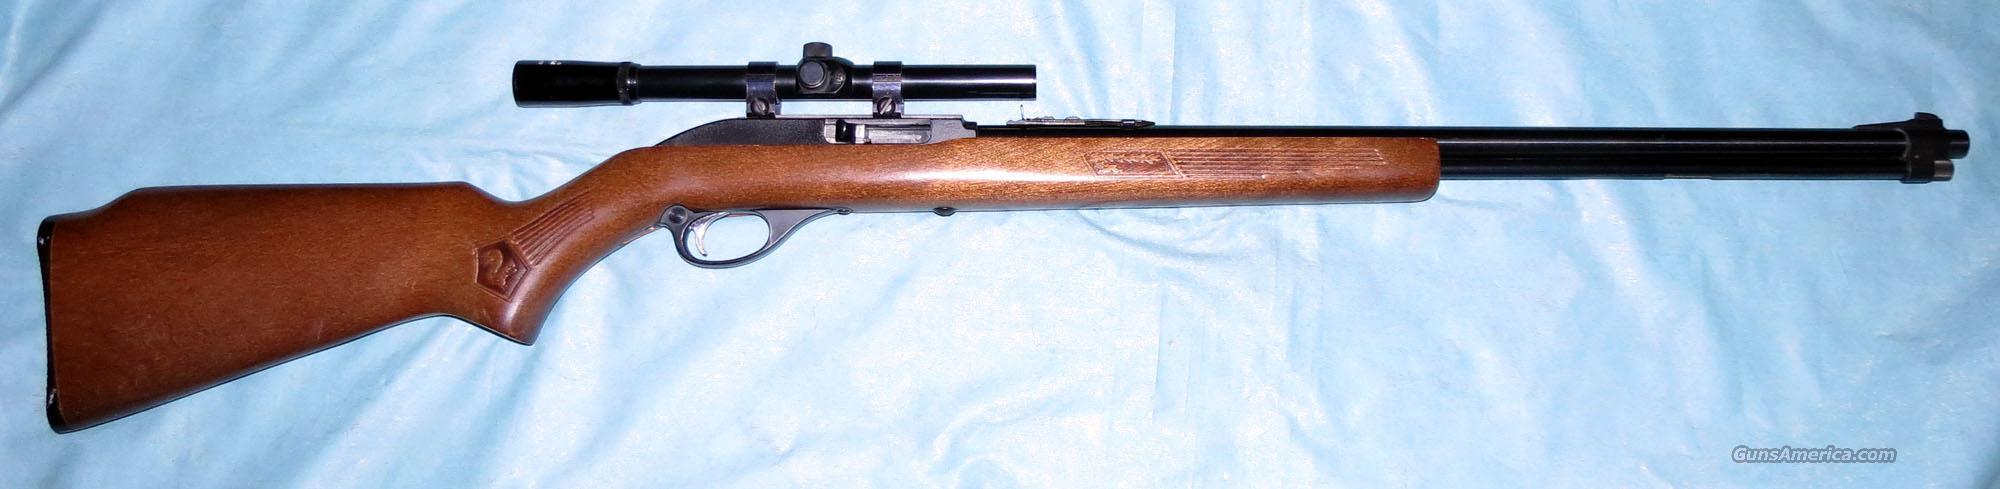 MARLIN GLENFIELD 22LR. - LIKE NEW  Guns > Rifles > Marlin Rifles > Modern > Semi-auto